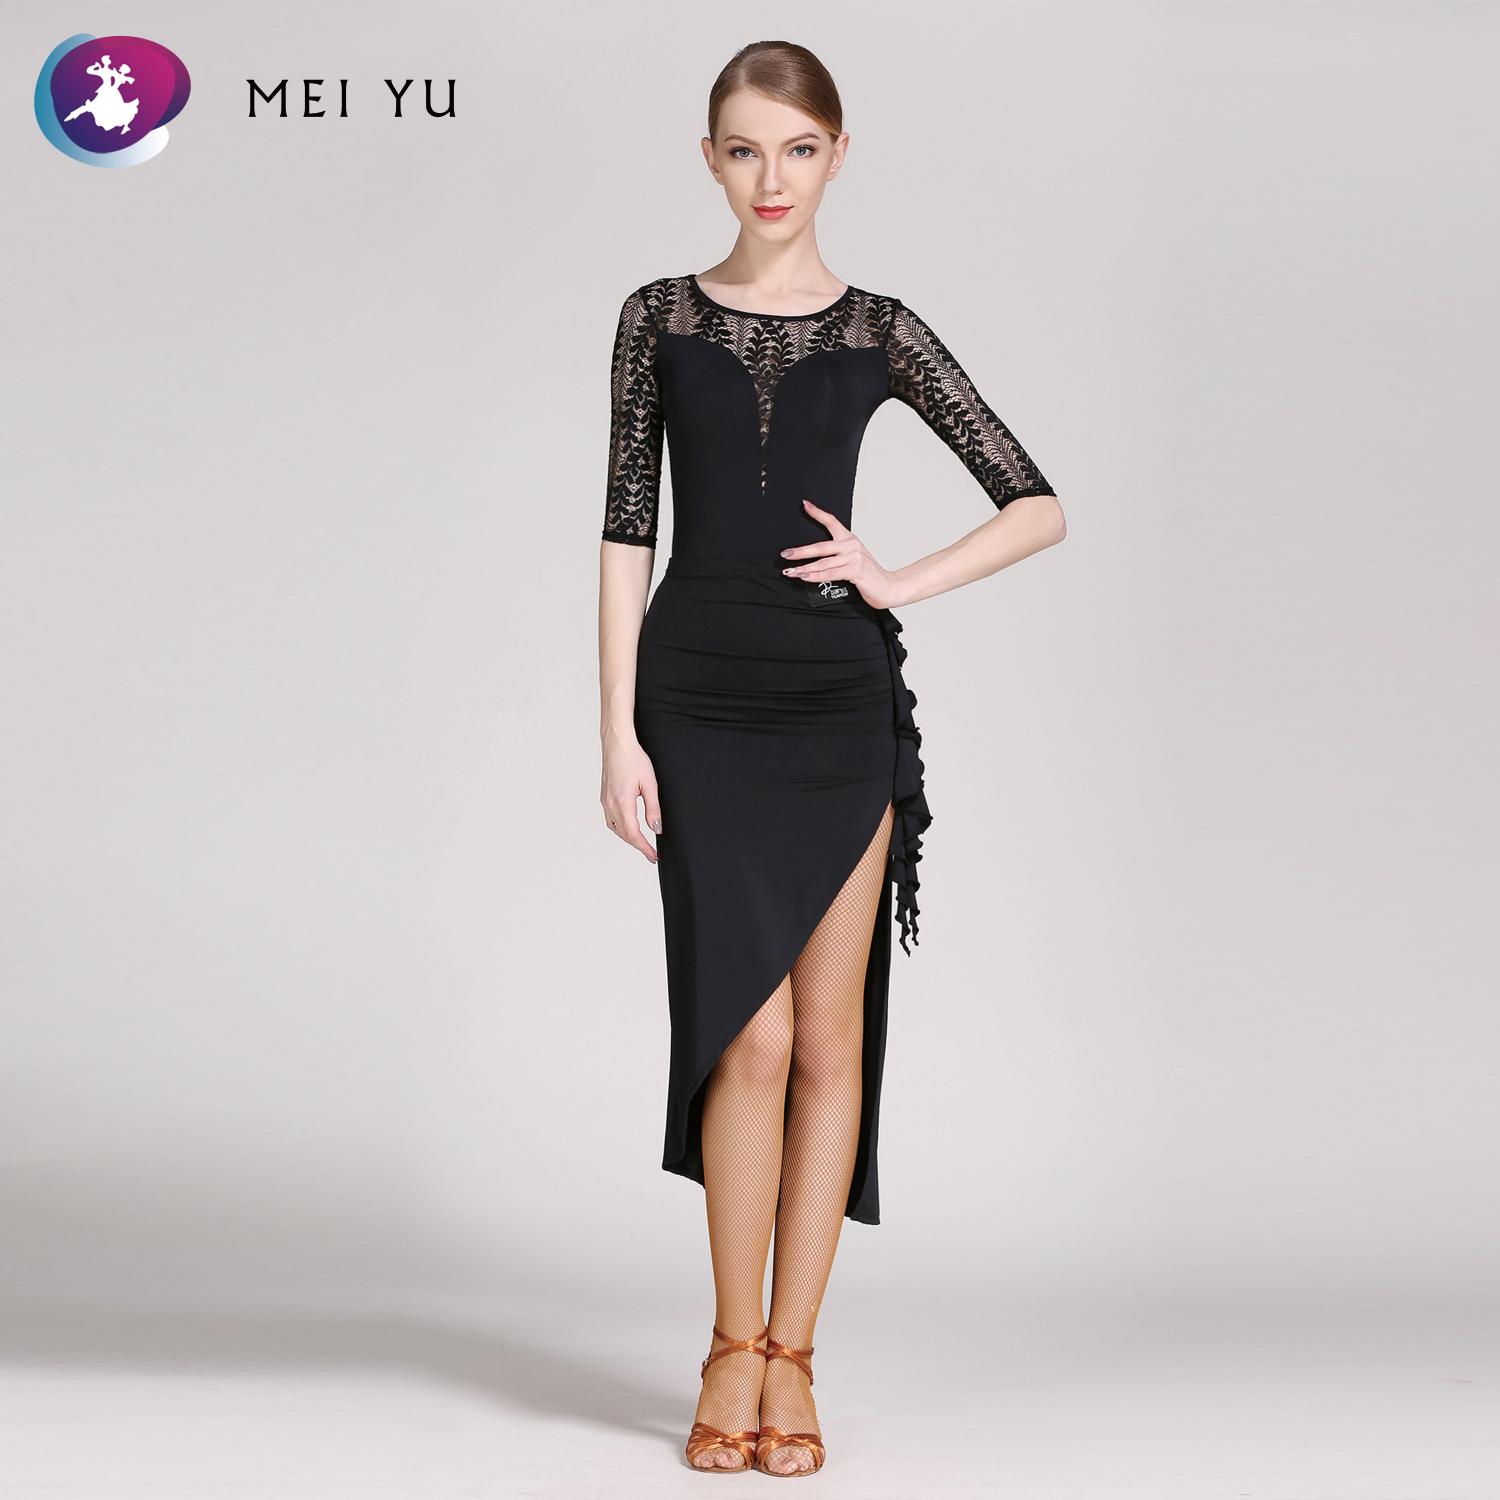 MEI YU GB059 and GB060 Latin Dance Top and Skirt Suits Ballroom Costume Leotard Women Lady Adult Dancewear Evening Party Dress